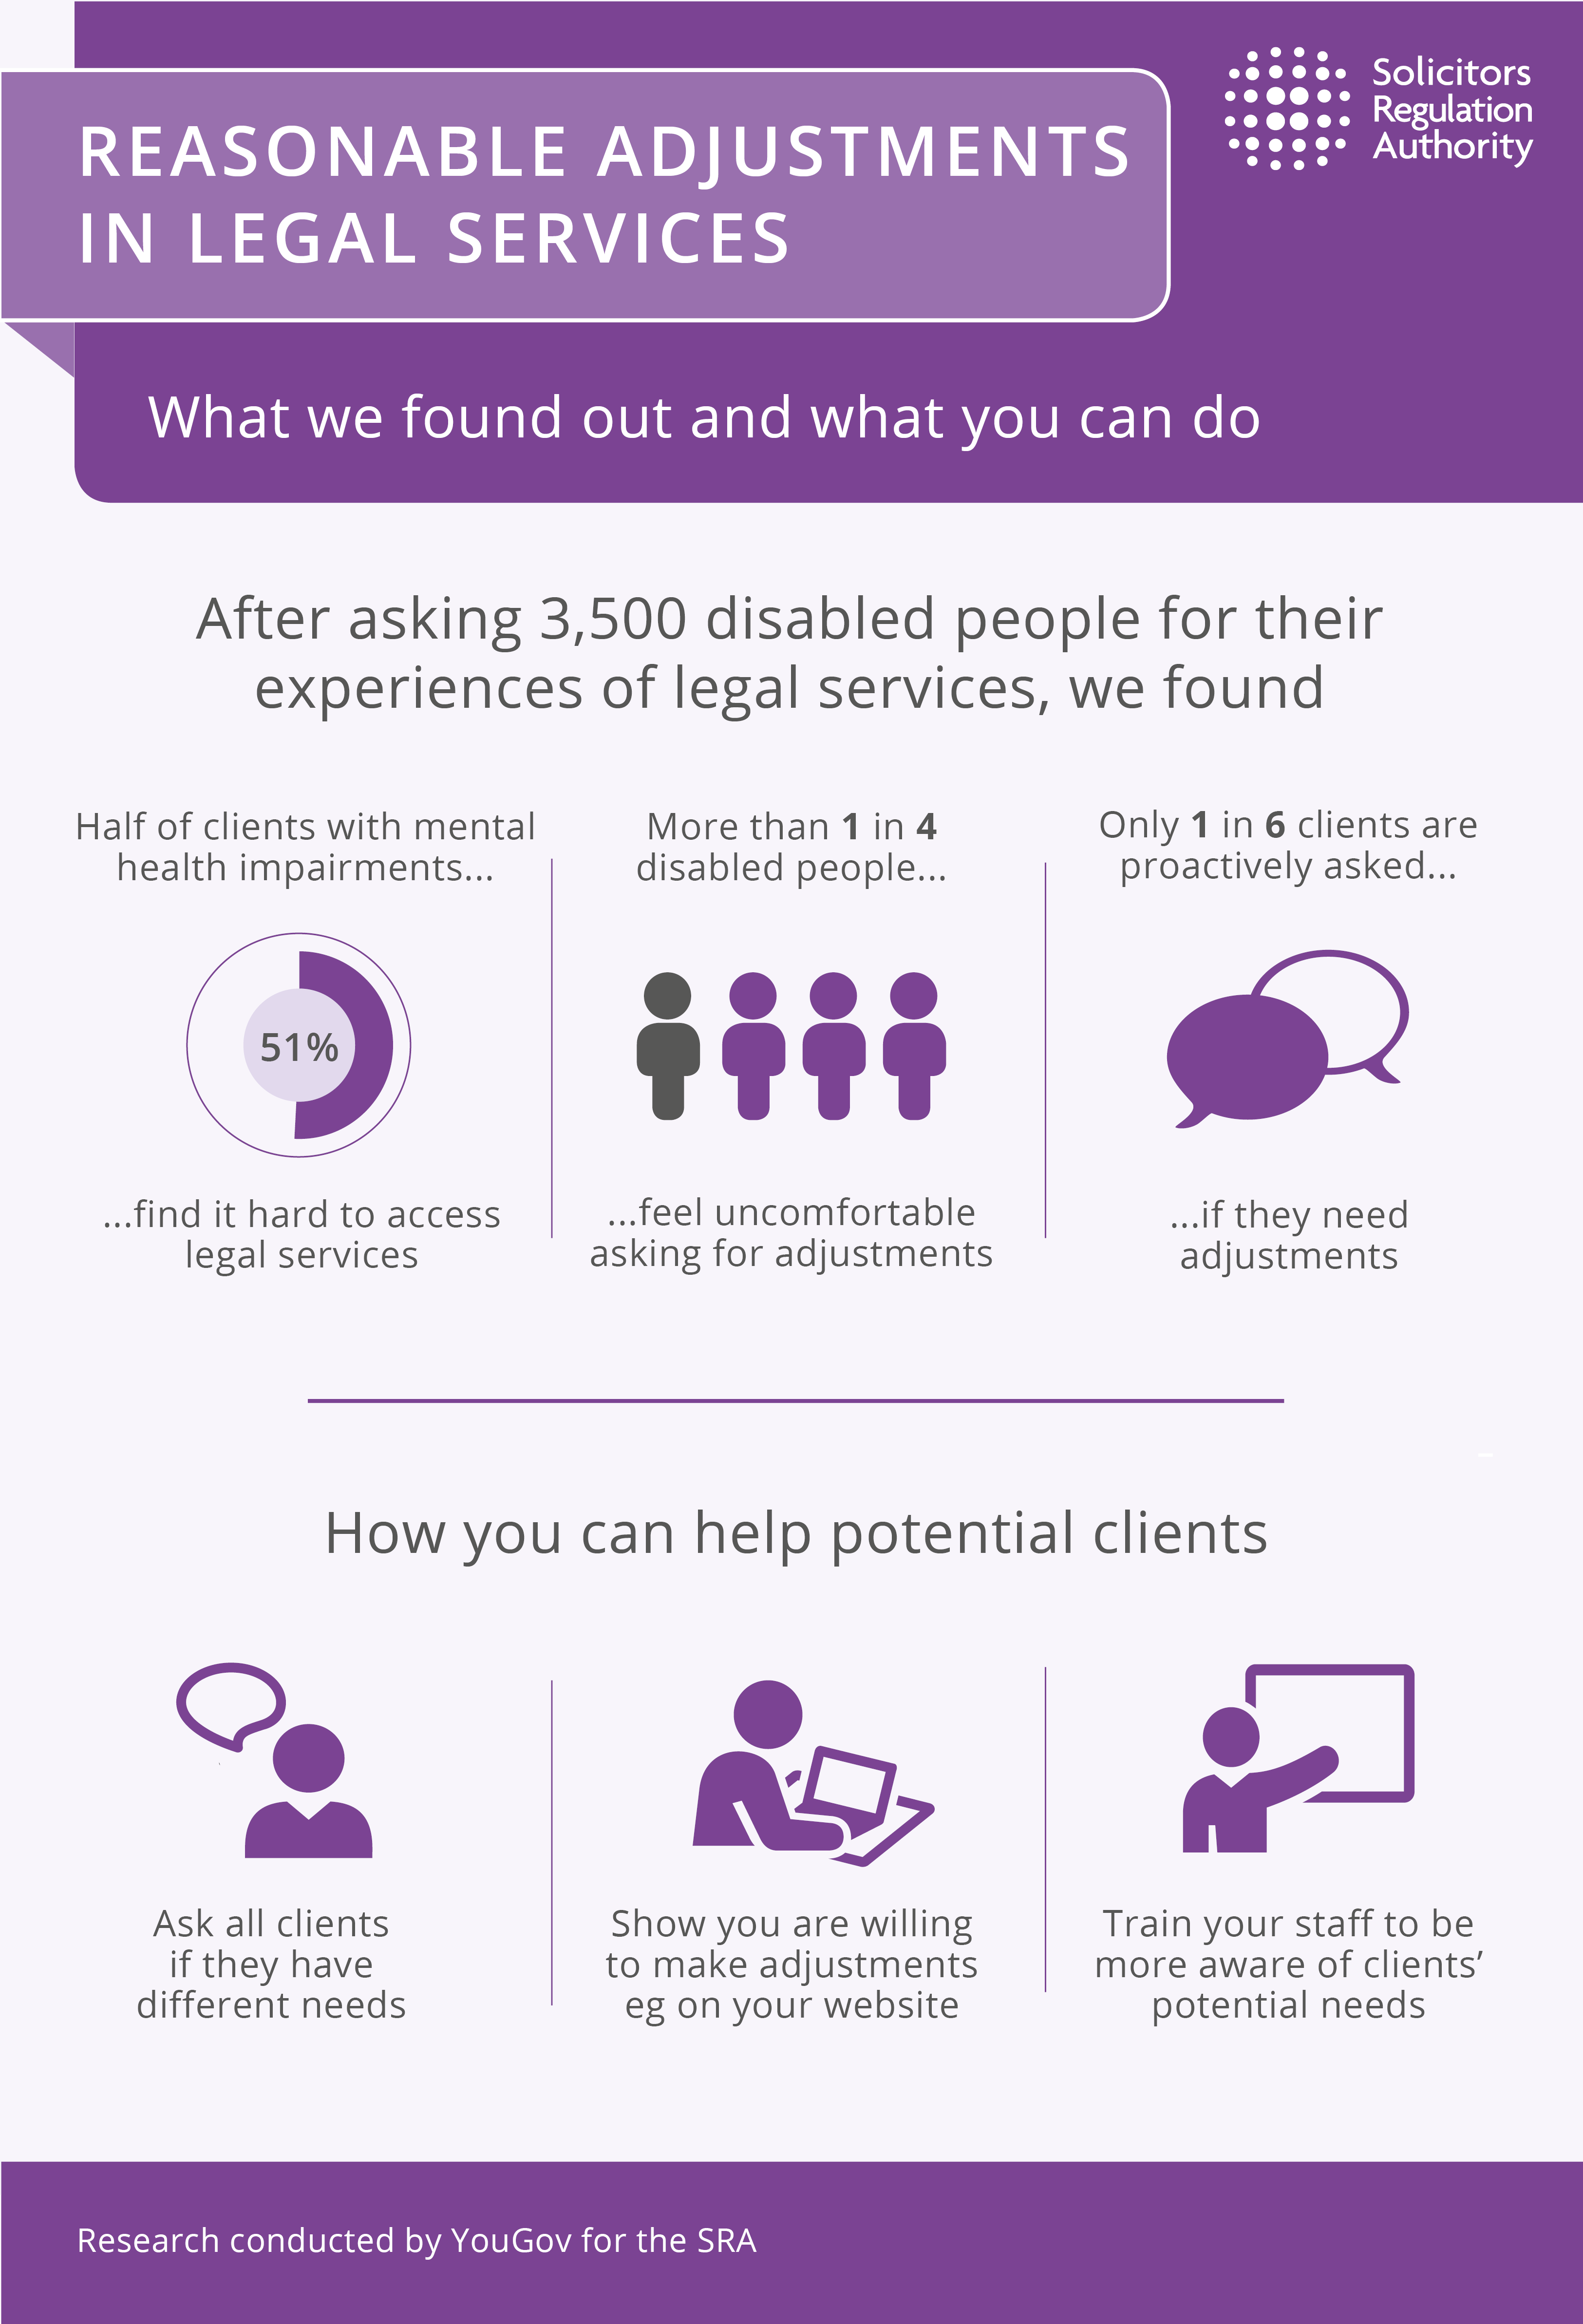 Reasonable adjustments in legal services infographic. After asking 3,500 disabled people for their experiences of legal services, we found. Half of clients with mental health impairments find it hard to access legal services. More than 1 in 4 disabled people feel uncomfortable asking for adjustments. Only 1 in 6 clients are proactively asked if they need adjustments. How you can help potential clients. Ask all clients if they have different needs. Show you are willing to make adjustments eg on your website. Train your staff to be more aware of clients' potential needs. This research was conducted by YouGov for the SRA.